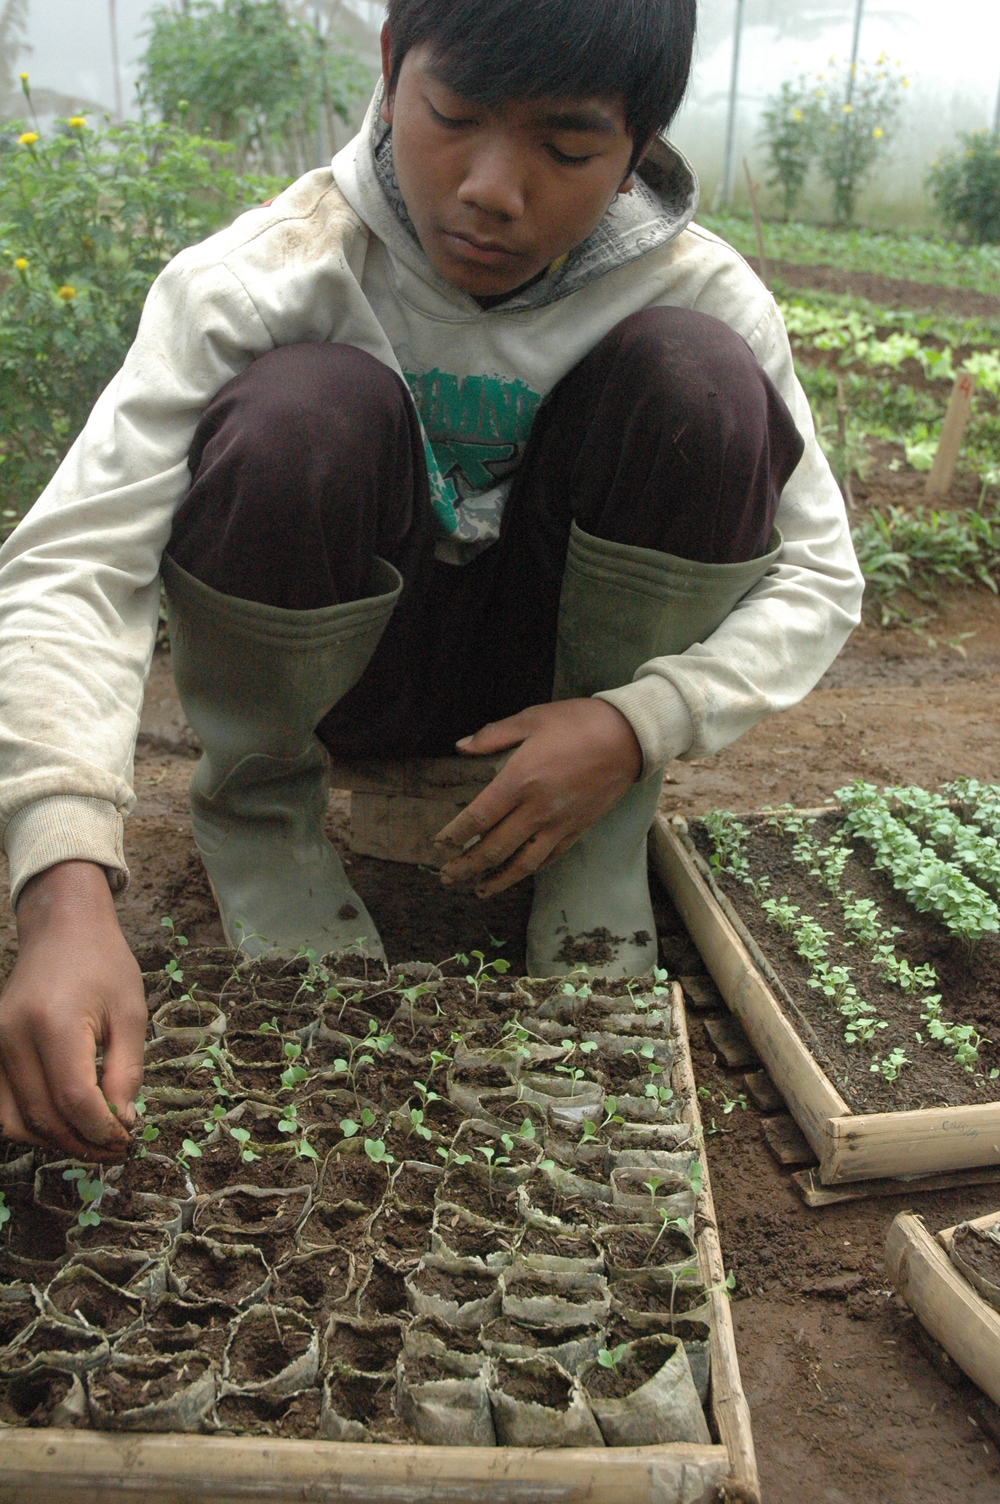 A boy takes care of shoots in the greenhouse at The Learning Farm in the lush hills of Indonesia's Puncak